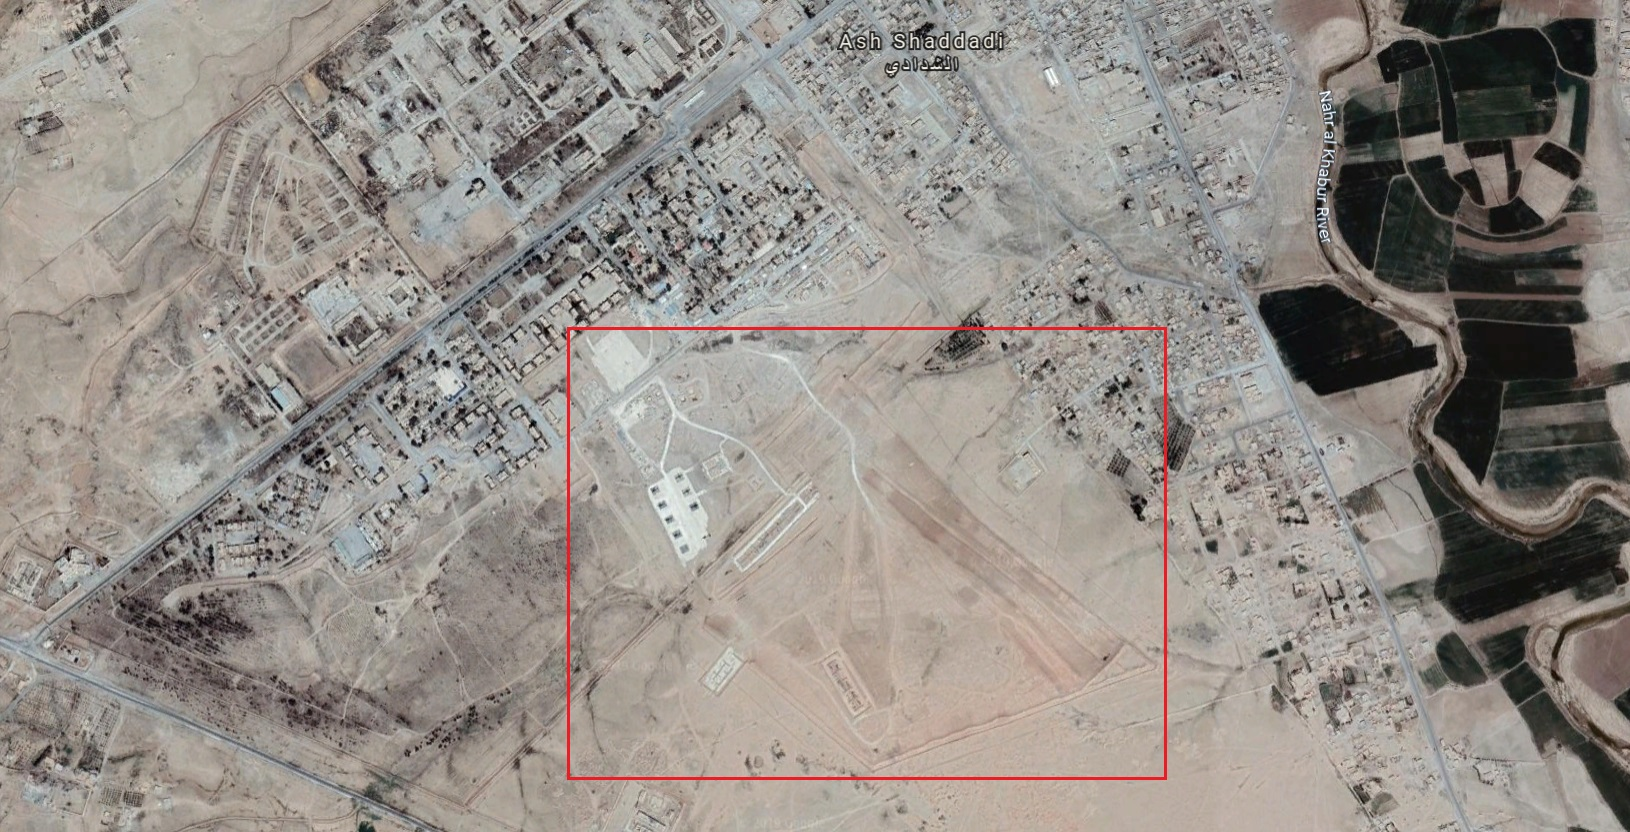 ISIS Claims Its Cells Shelled U.S.-led Coalition Base In Northeast Syria